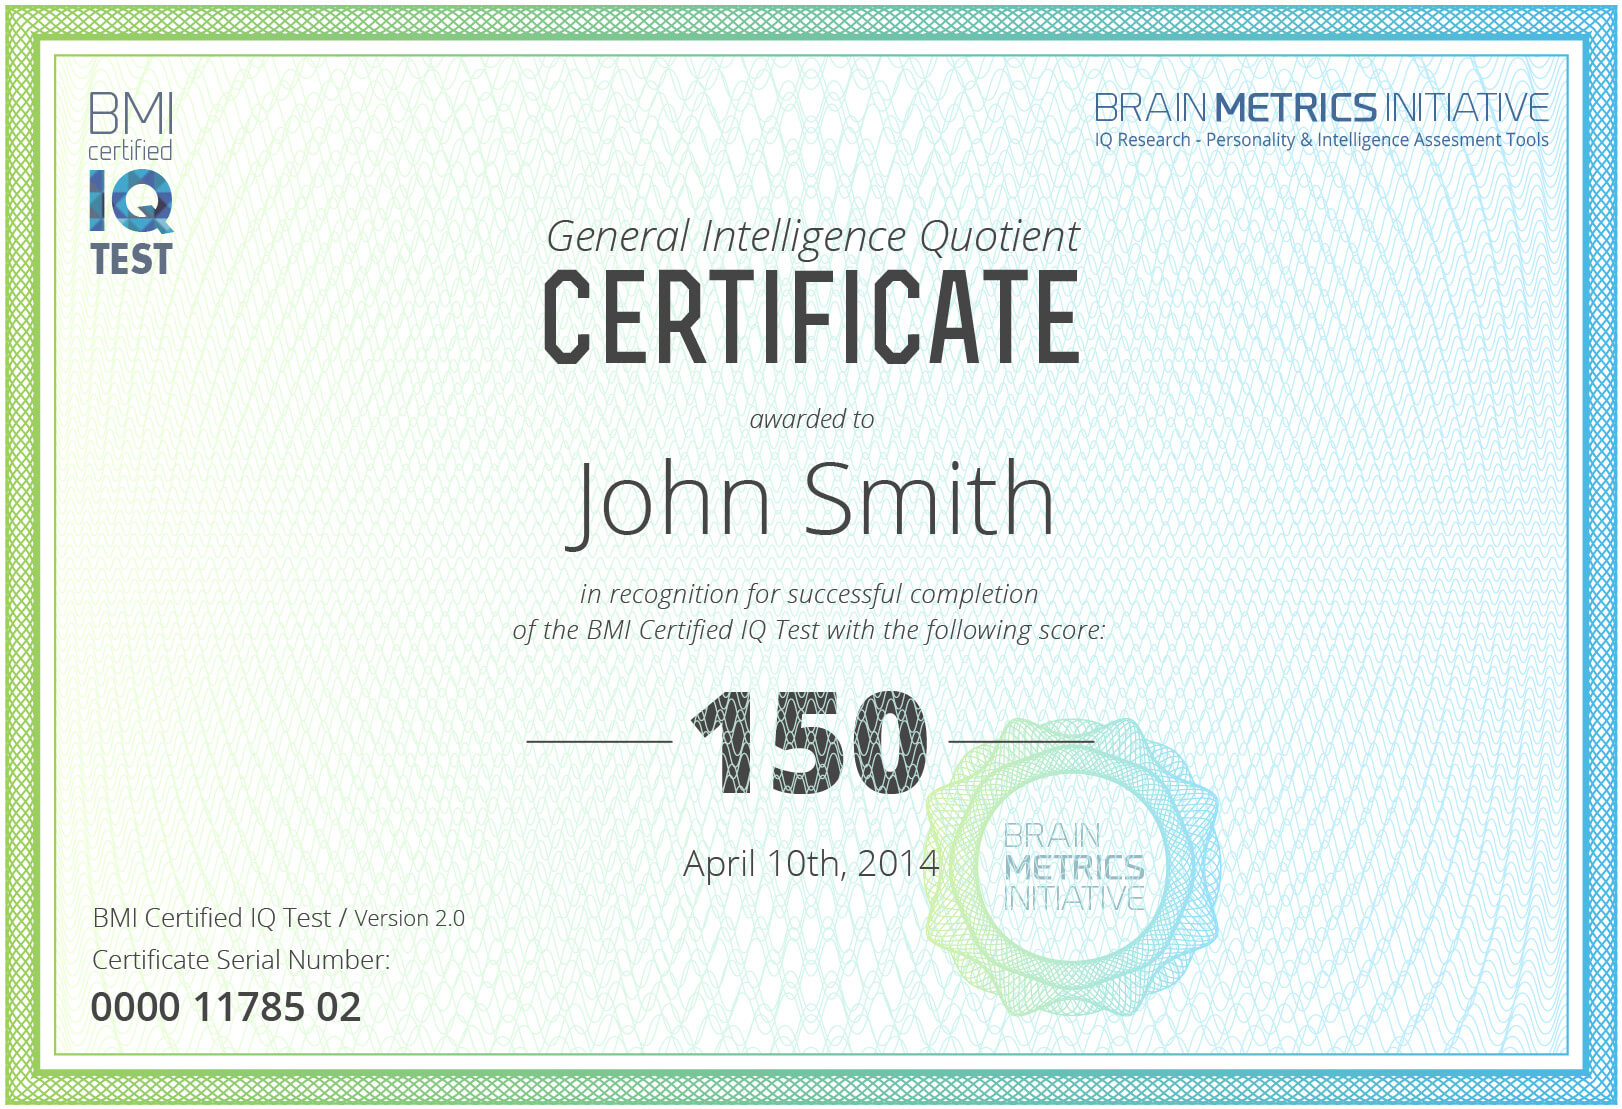 Bmi Certified Iq Test - Take The Most Accurate Online Iq Test! Intended For Iq Certificate Template